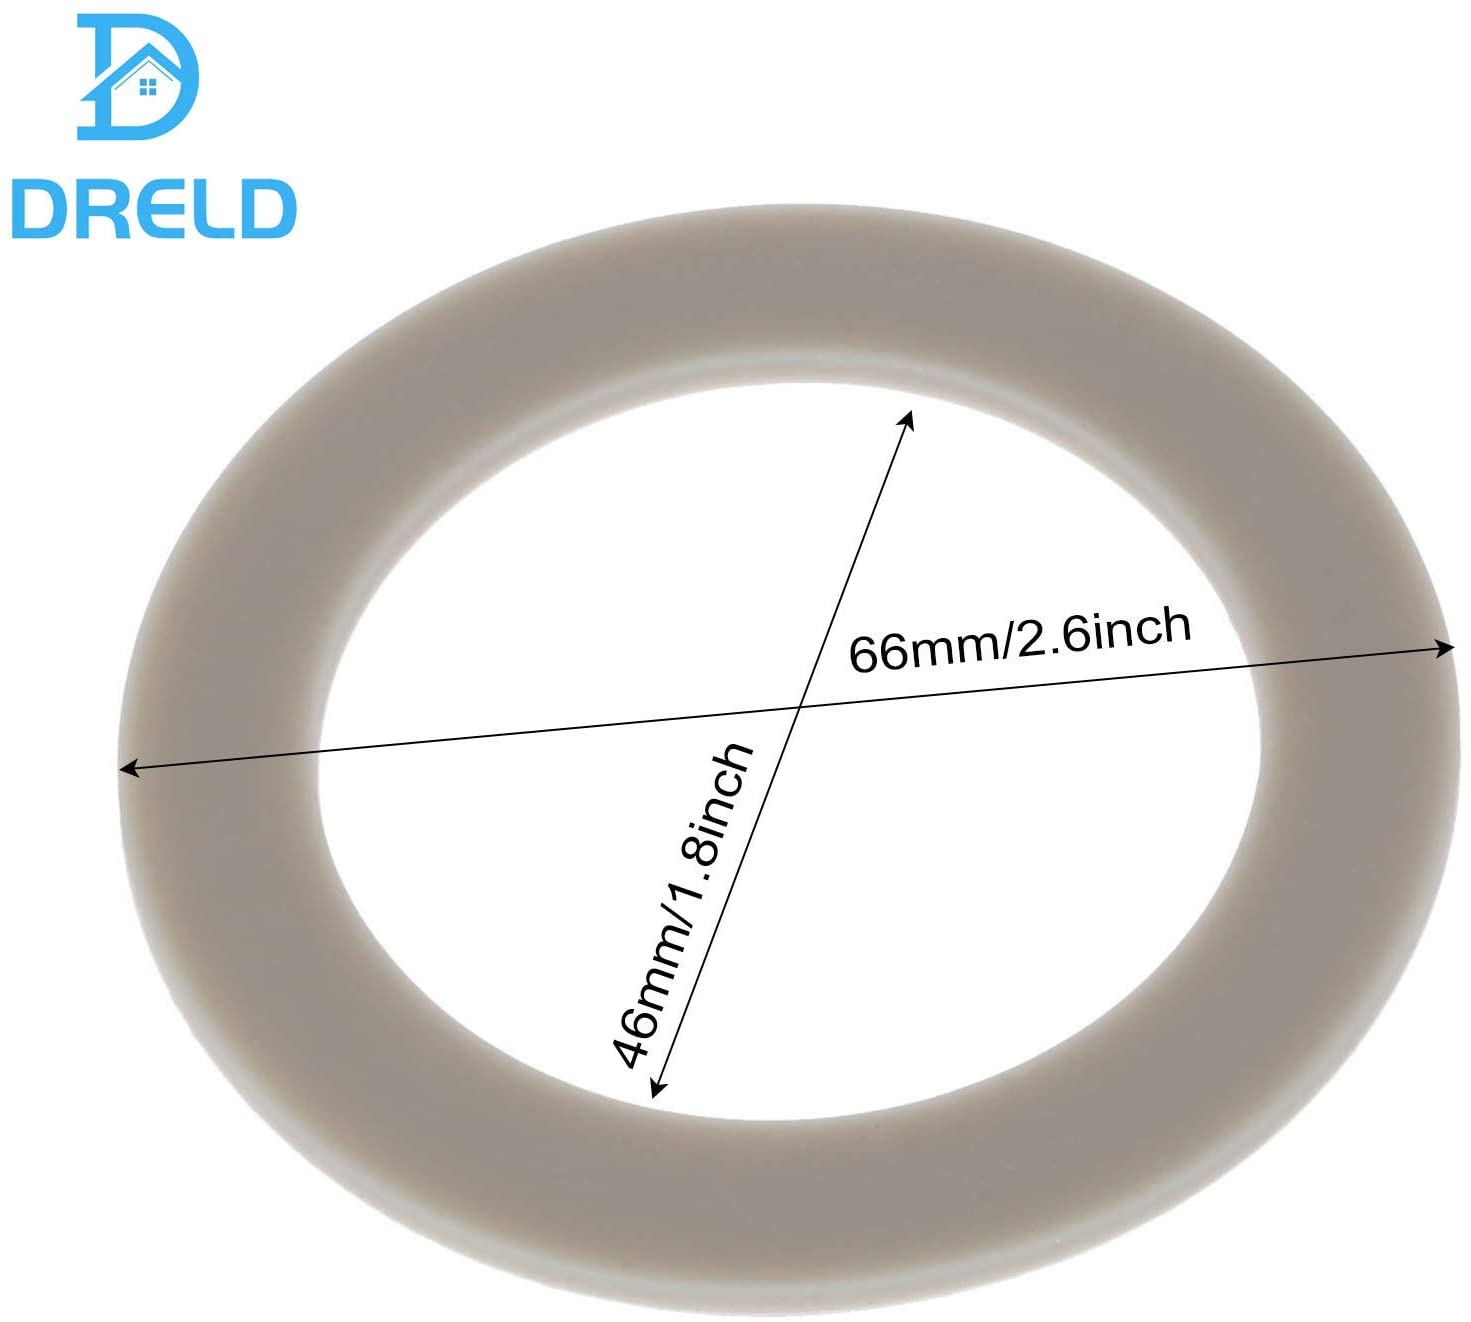 3Pcs Blender Rubber Gasket Sealing O-ring CUCB-456-3, Replacement Part Fit for Cuisinart Blenders # BFP703 BFP-703 BFP703B BFP-703CH SPB-7 SPB7 SPB-7BK CB8 CB9 BFP-703